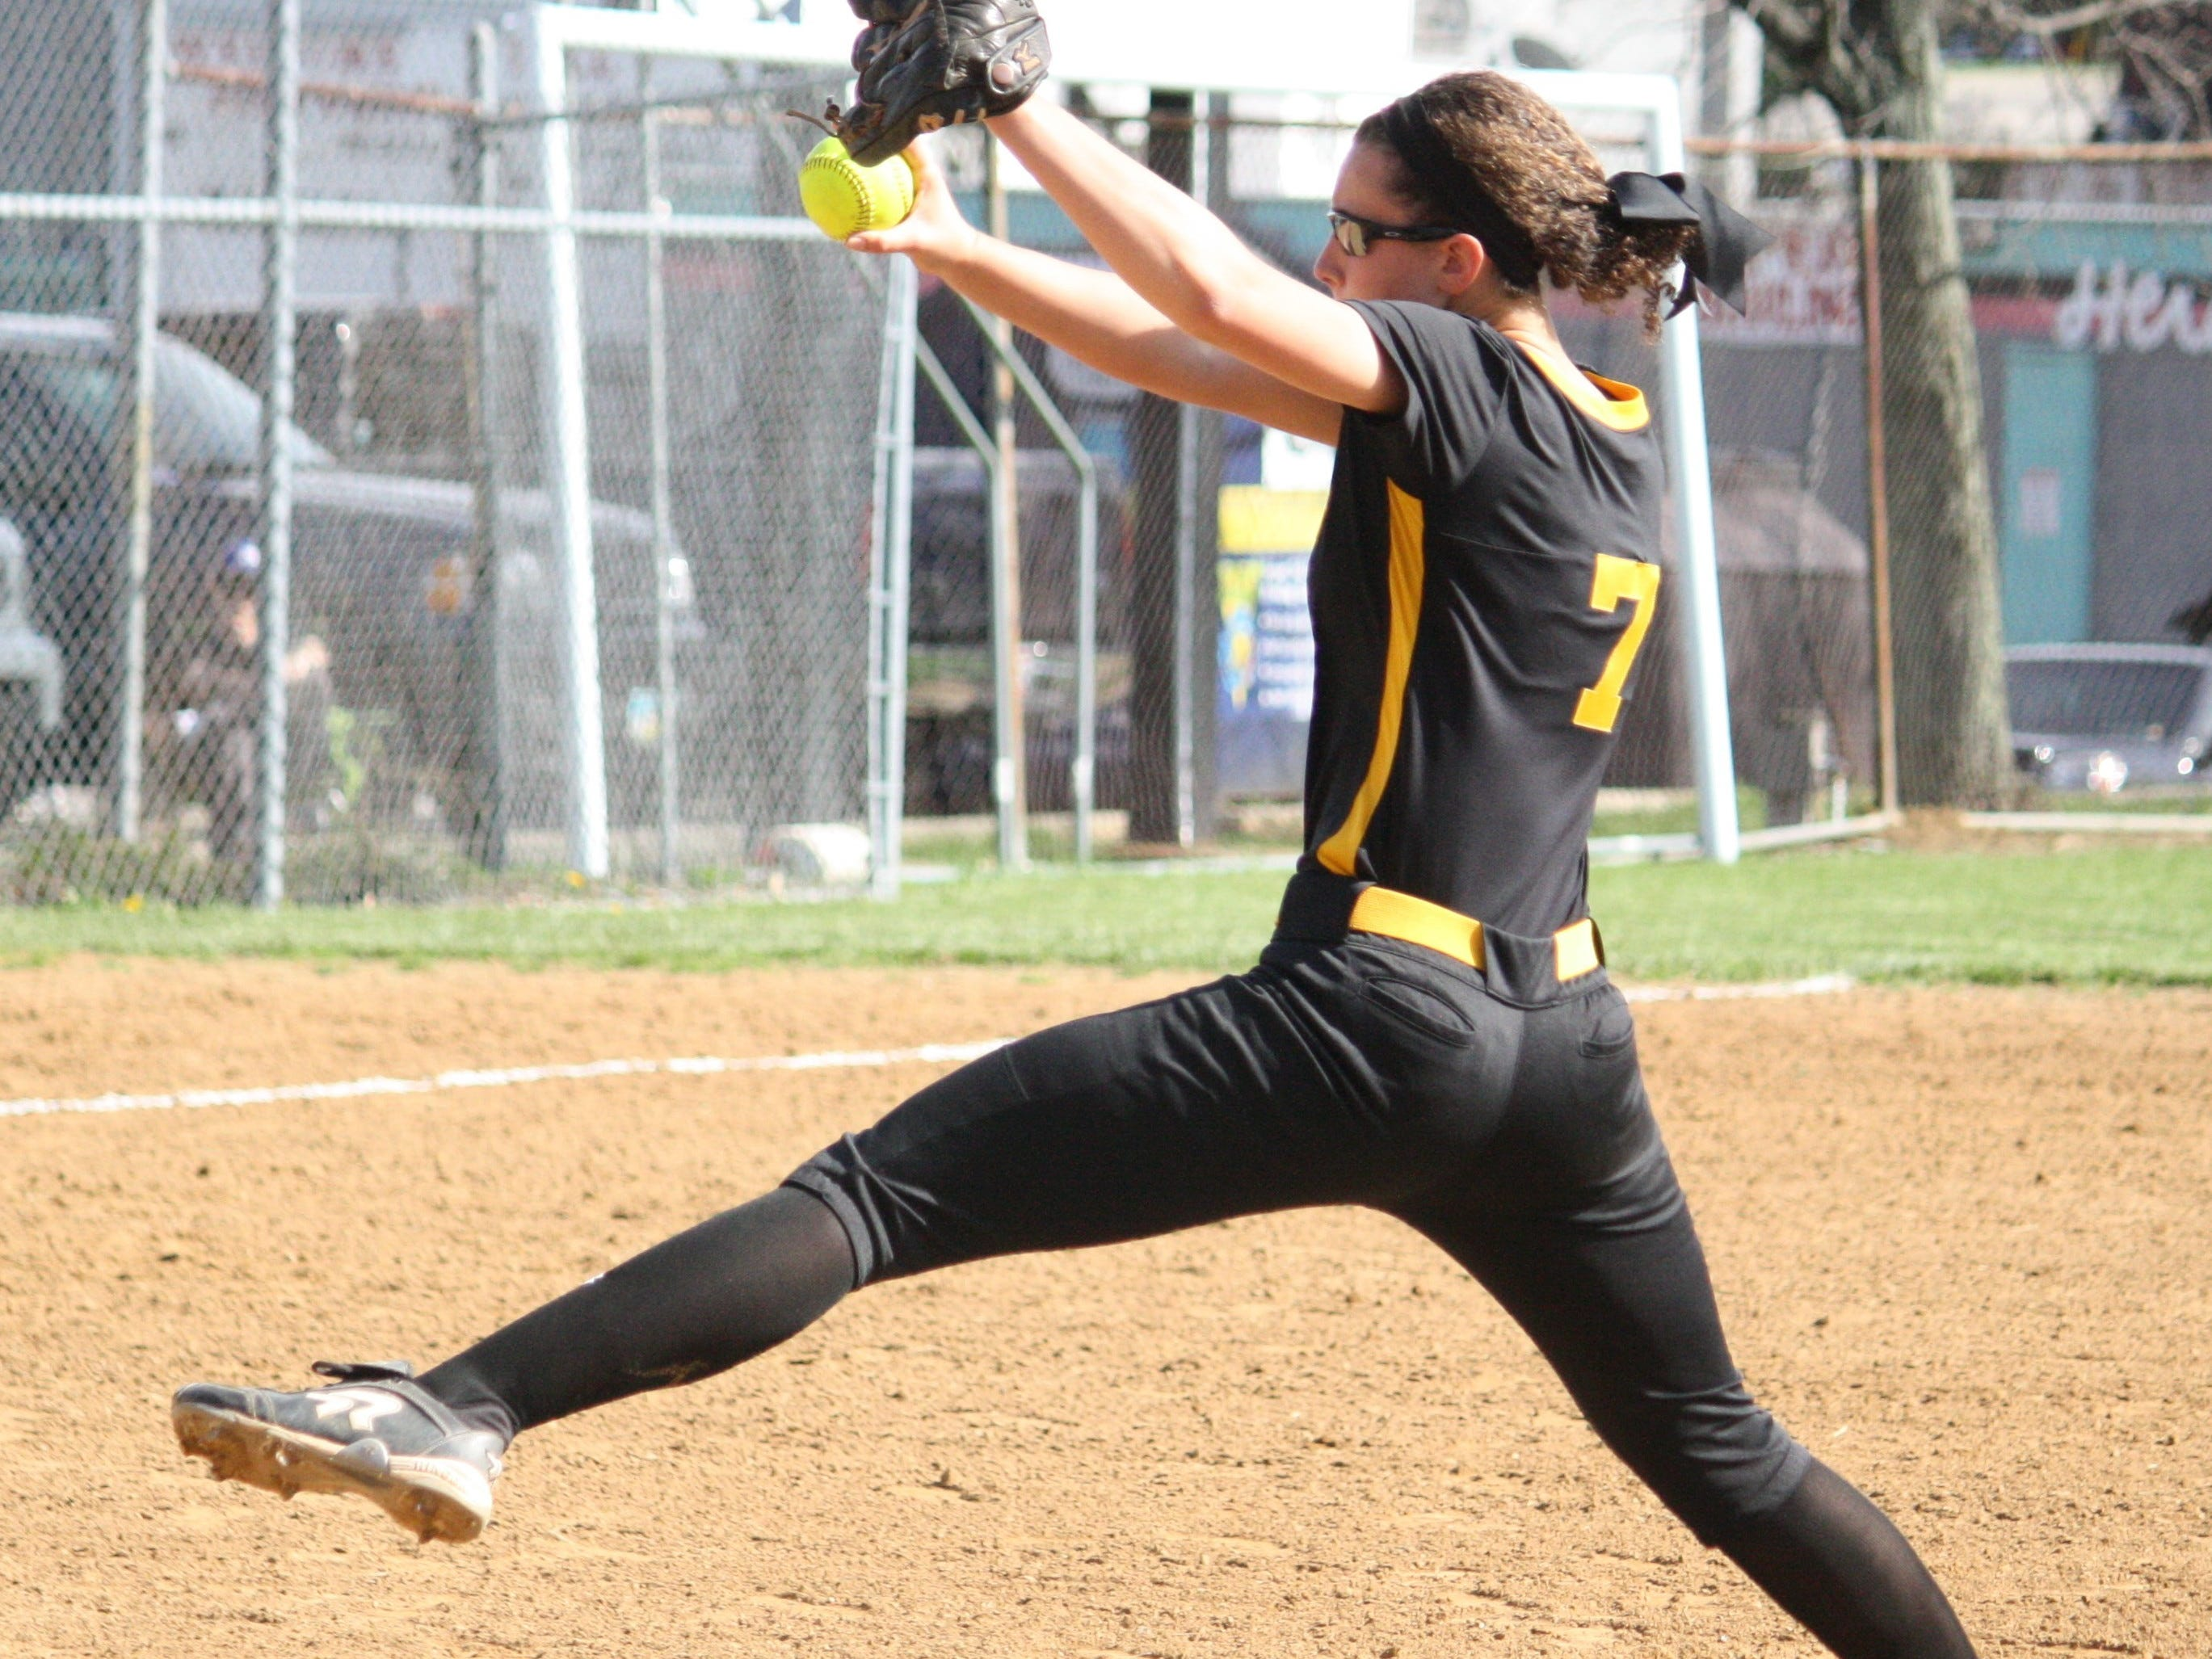 McAuley High School junior pitcher Aubrey Brunst delivers to home plate against Mercy on April 17.